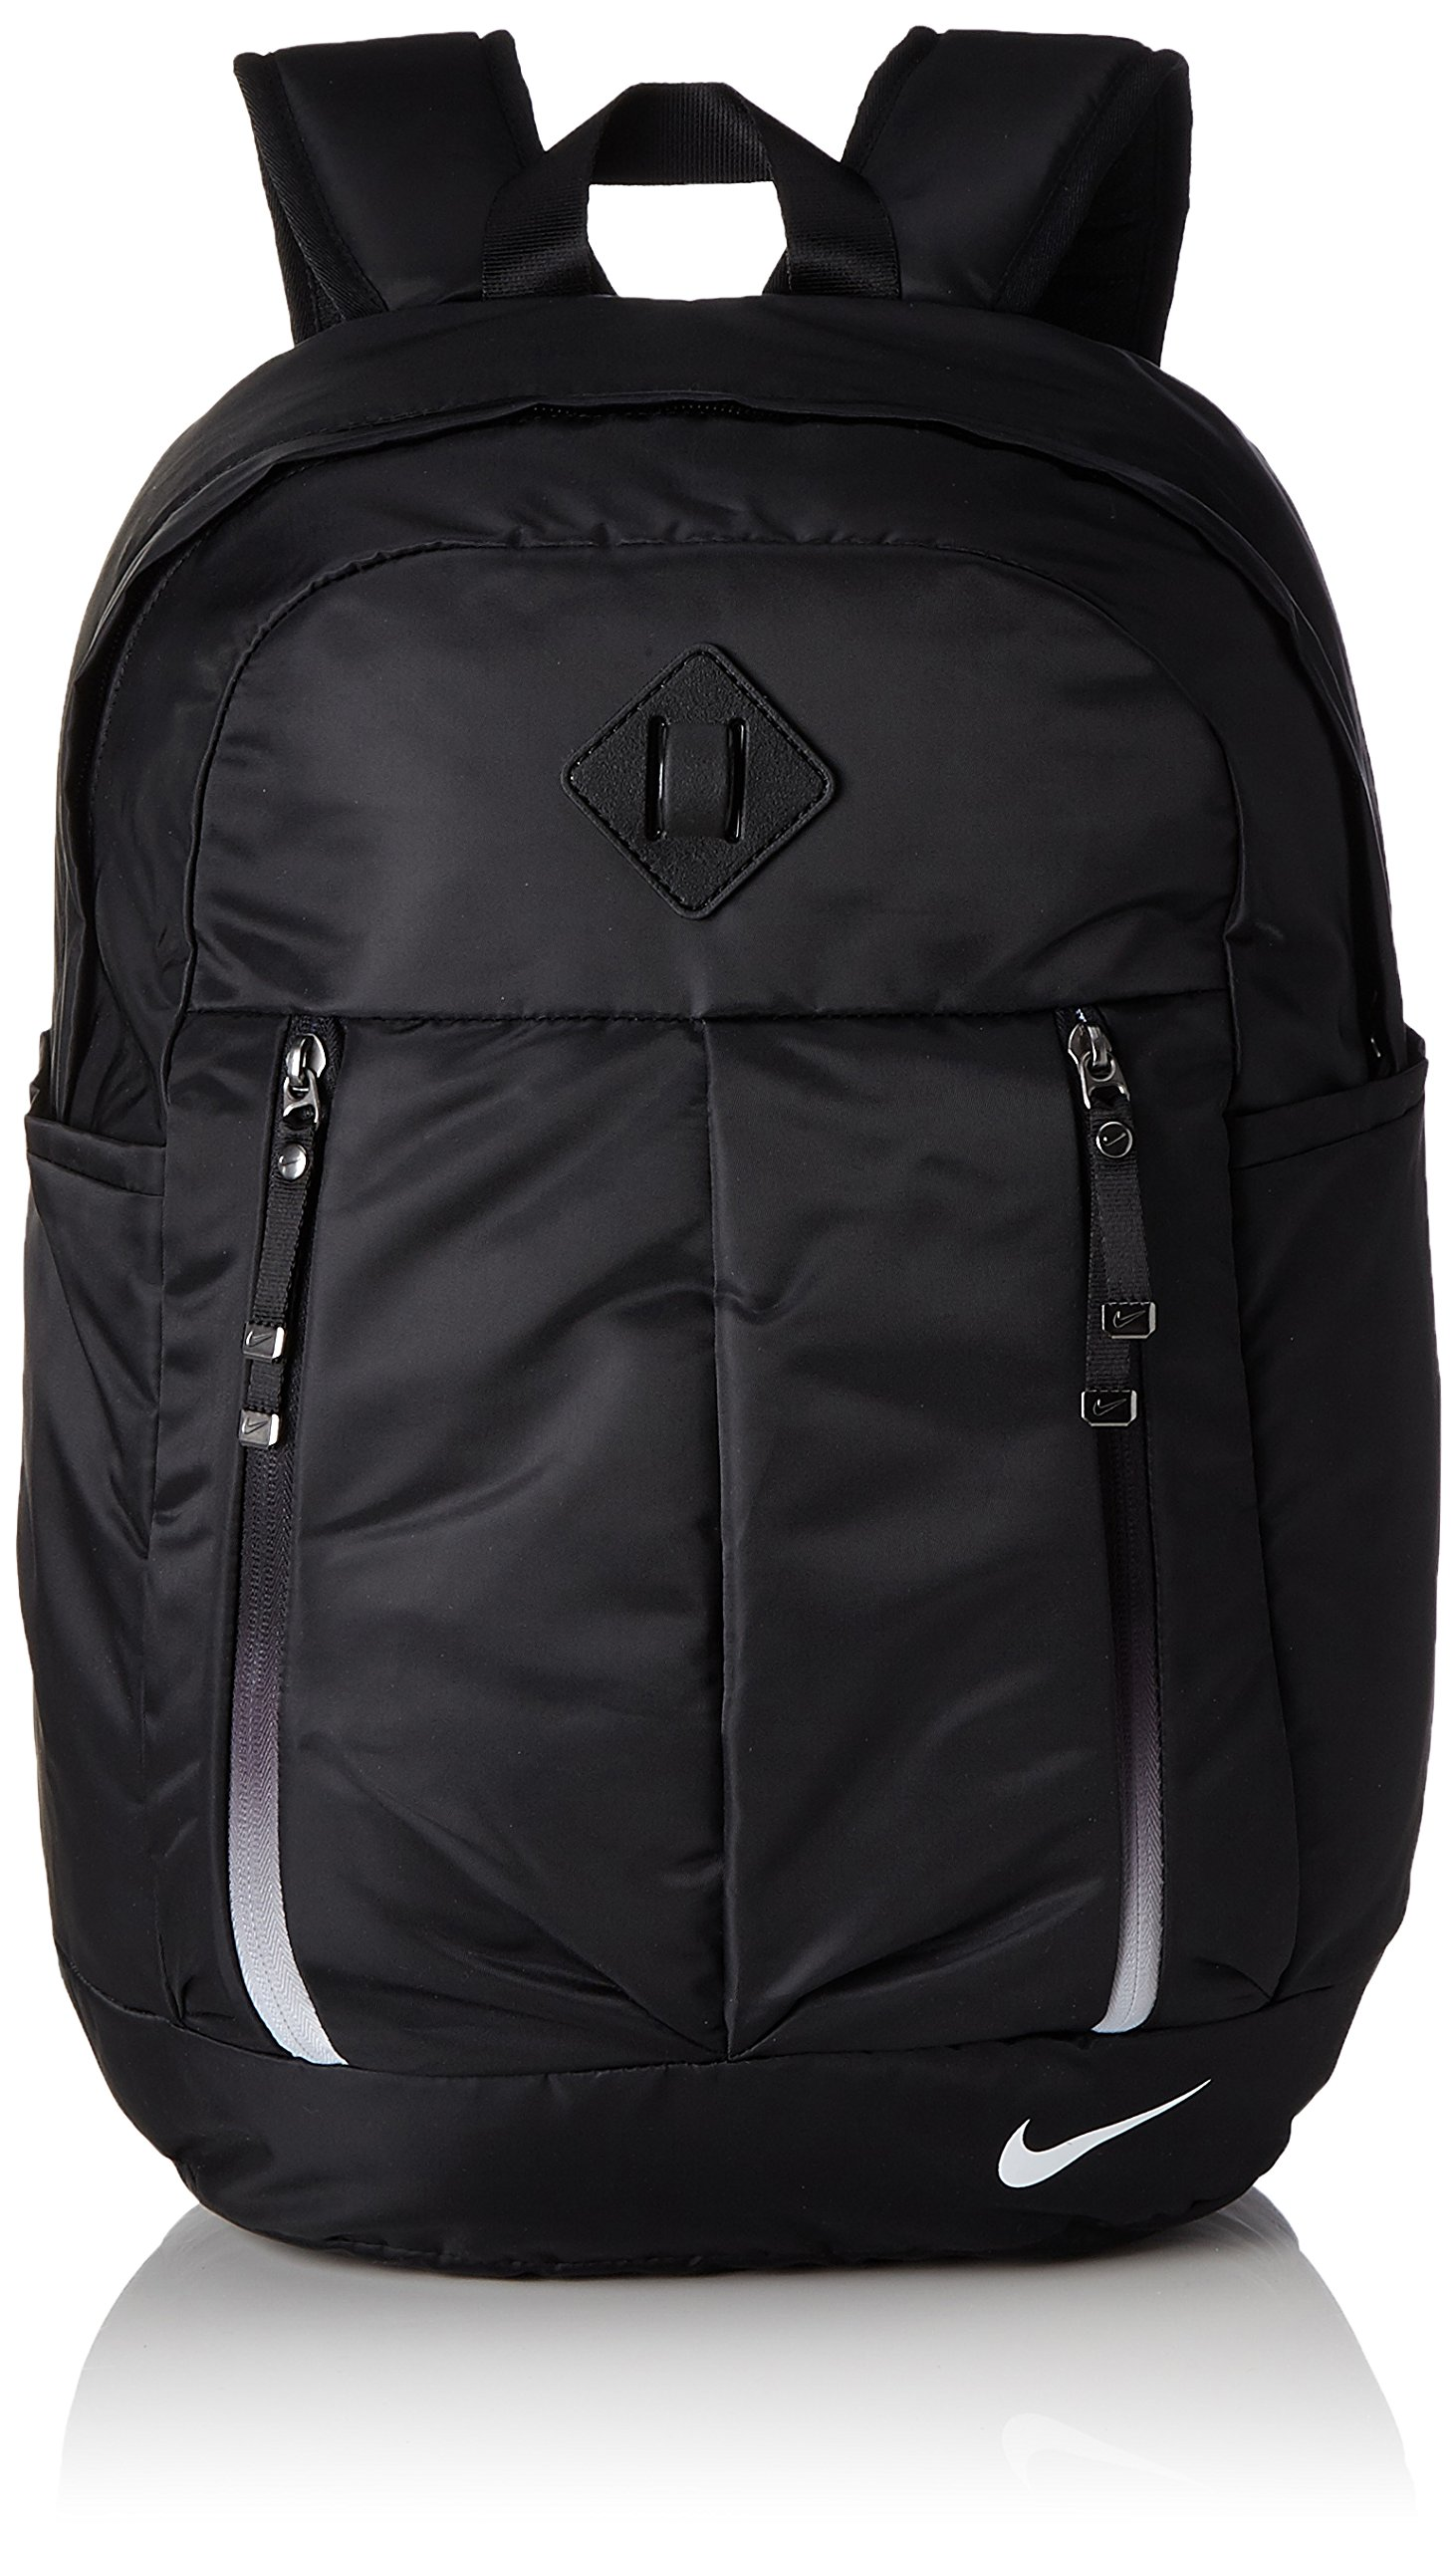 Women s Nike Aura Backpack features a zippered main compartment large  enough to carry your workout essentials and laptop 8b3dd6a285